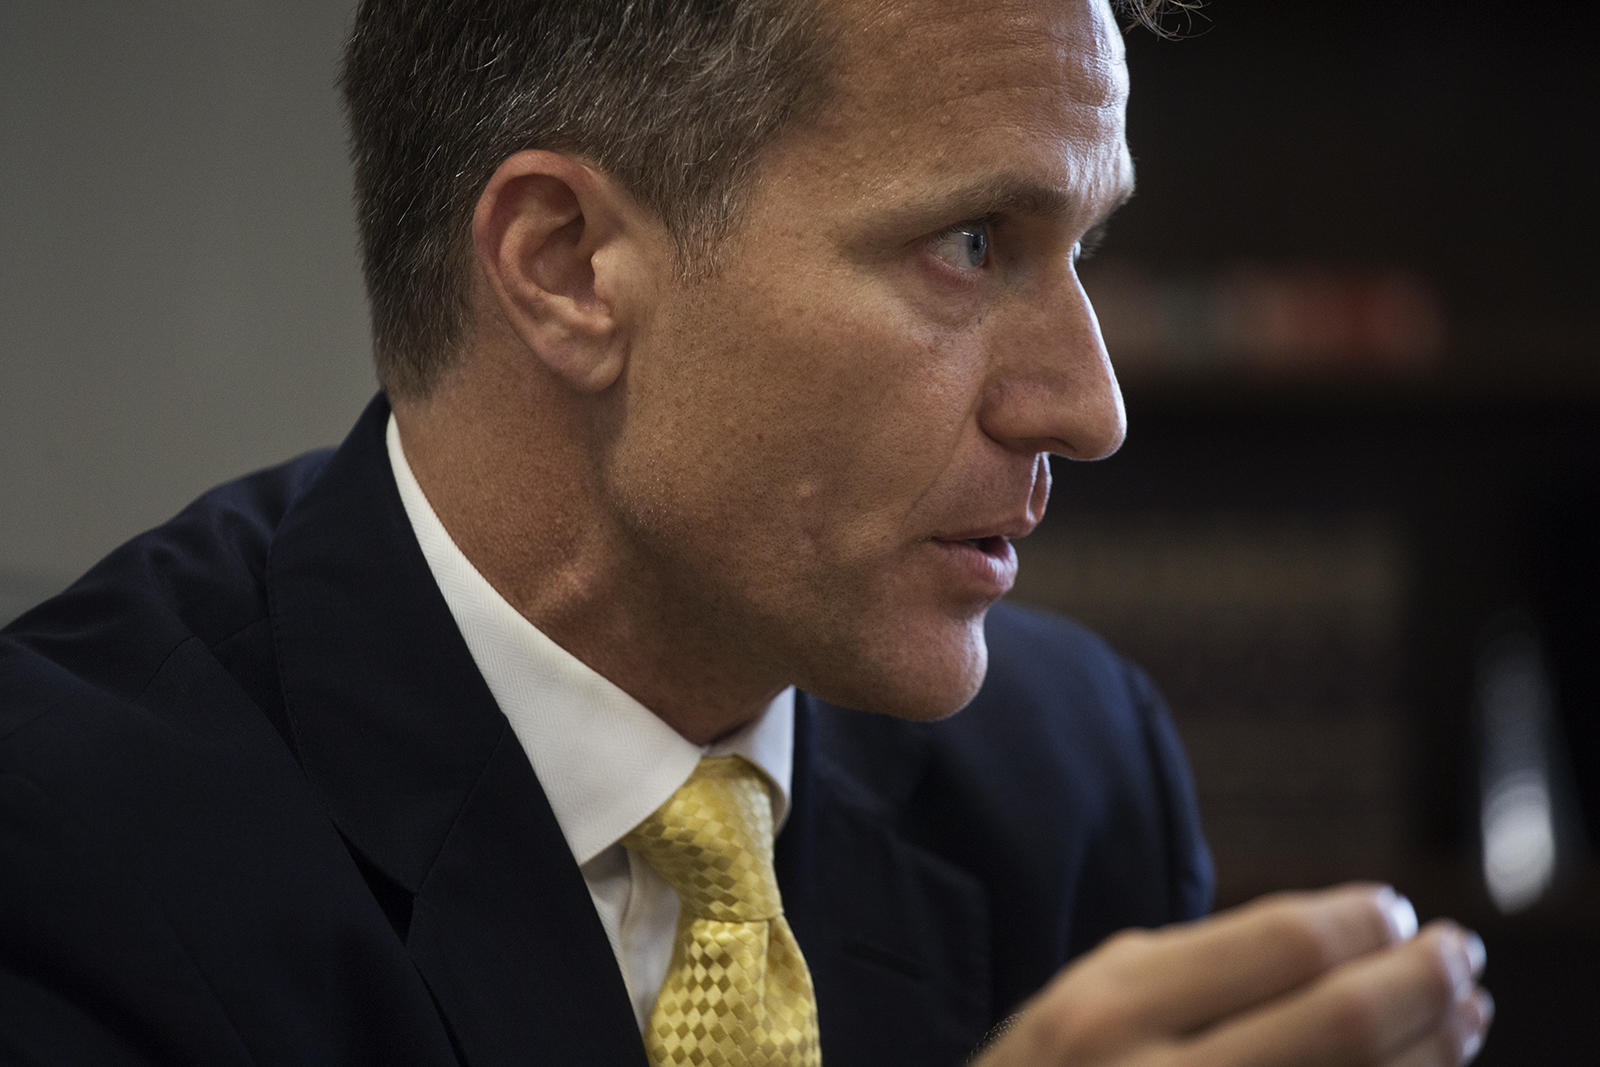 Legislative committee releases addendum to report on Missouri Gov. Greitens